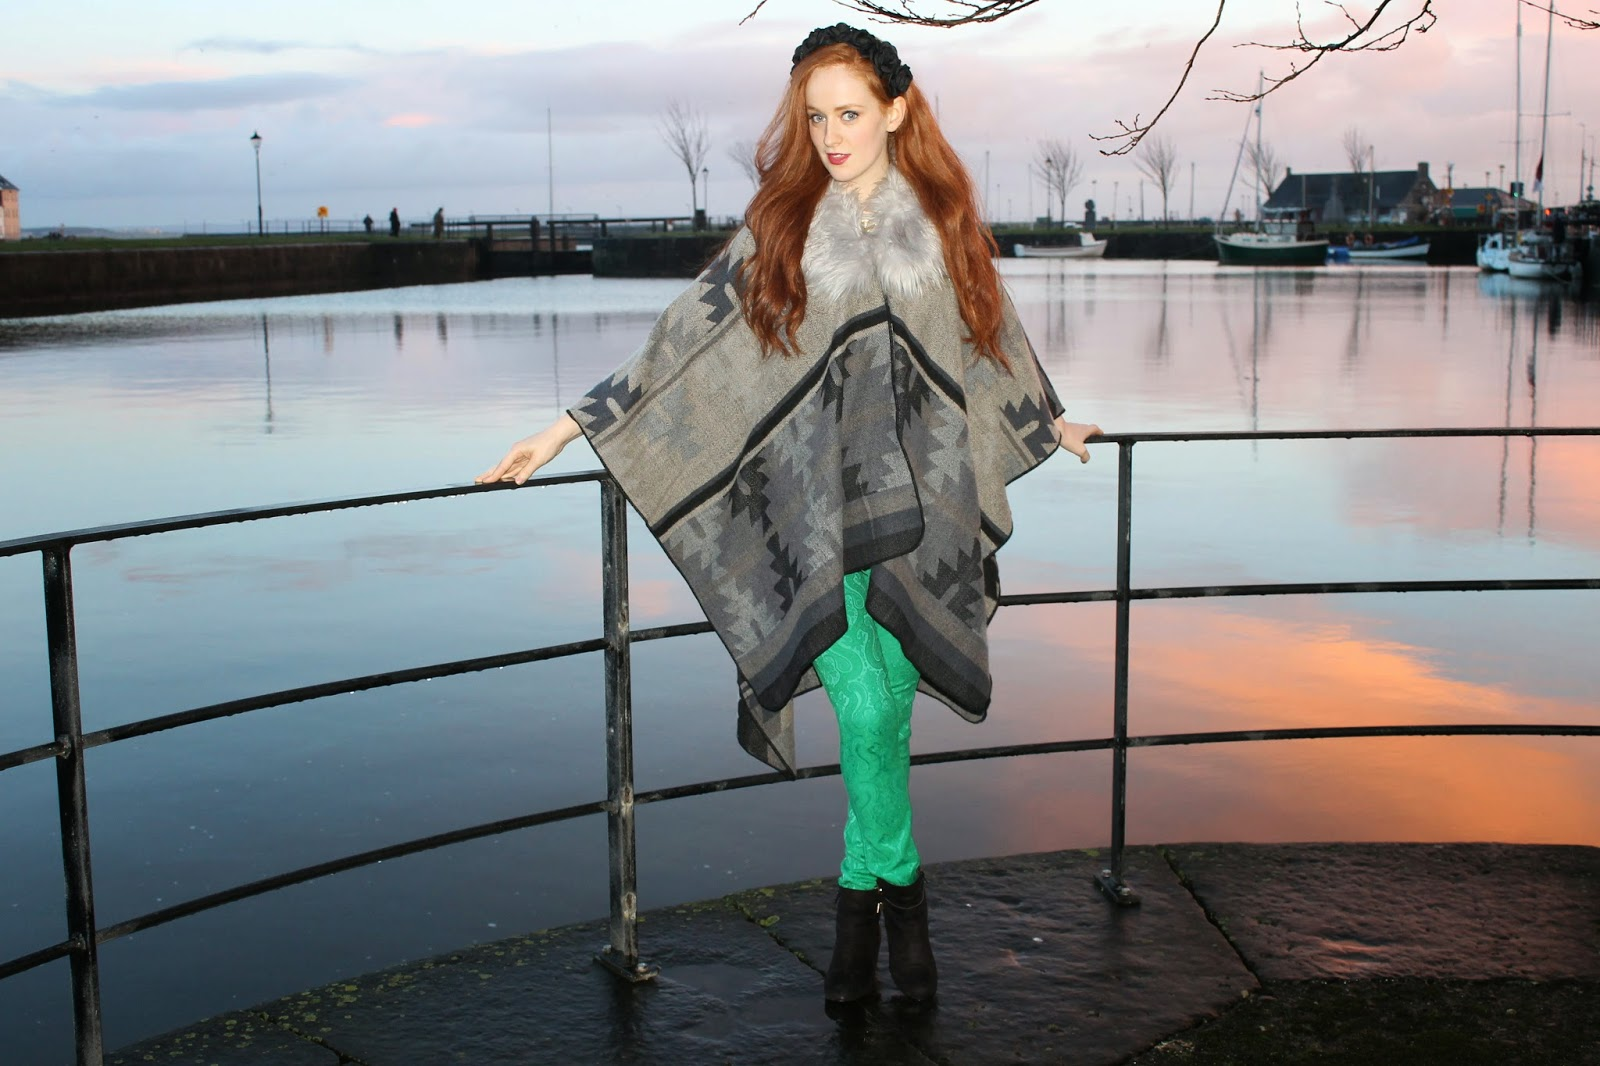 Stephanie Casserly model galway